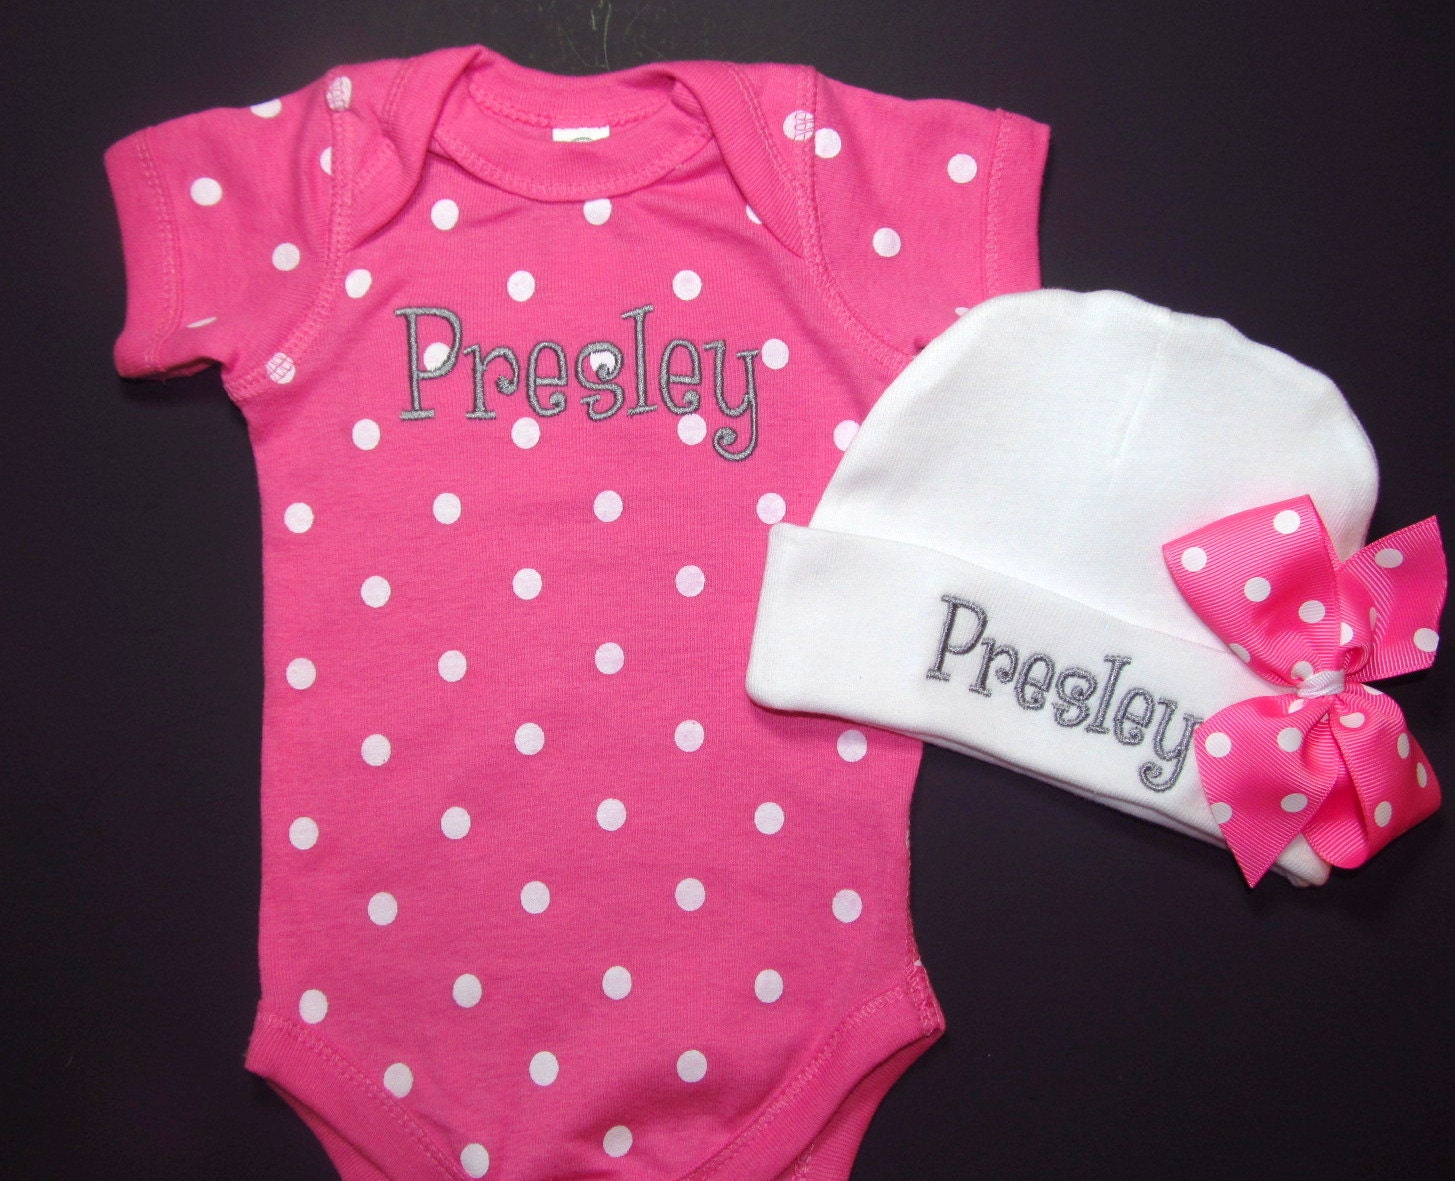 Baby Girls Clothing Sets Personalized Pink Polka Dot